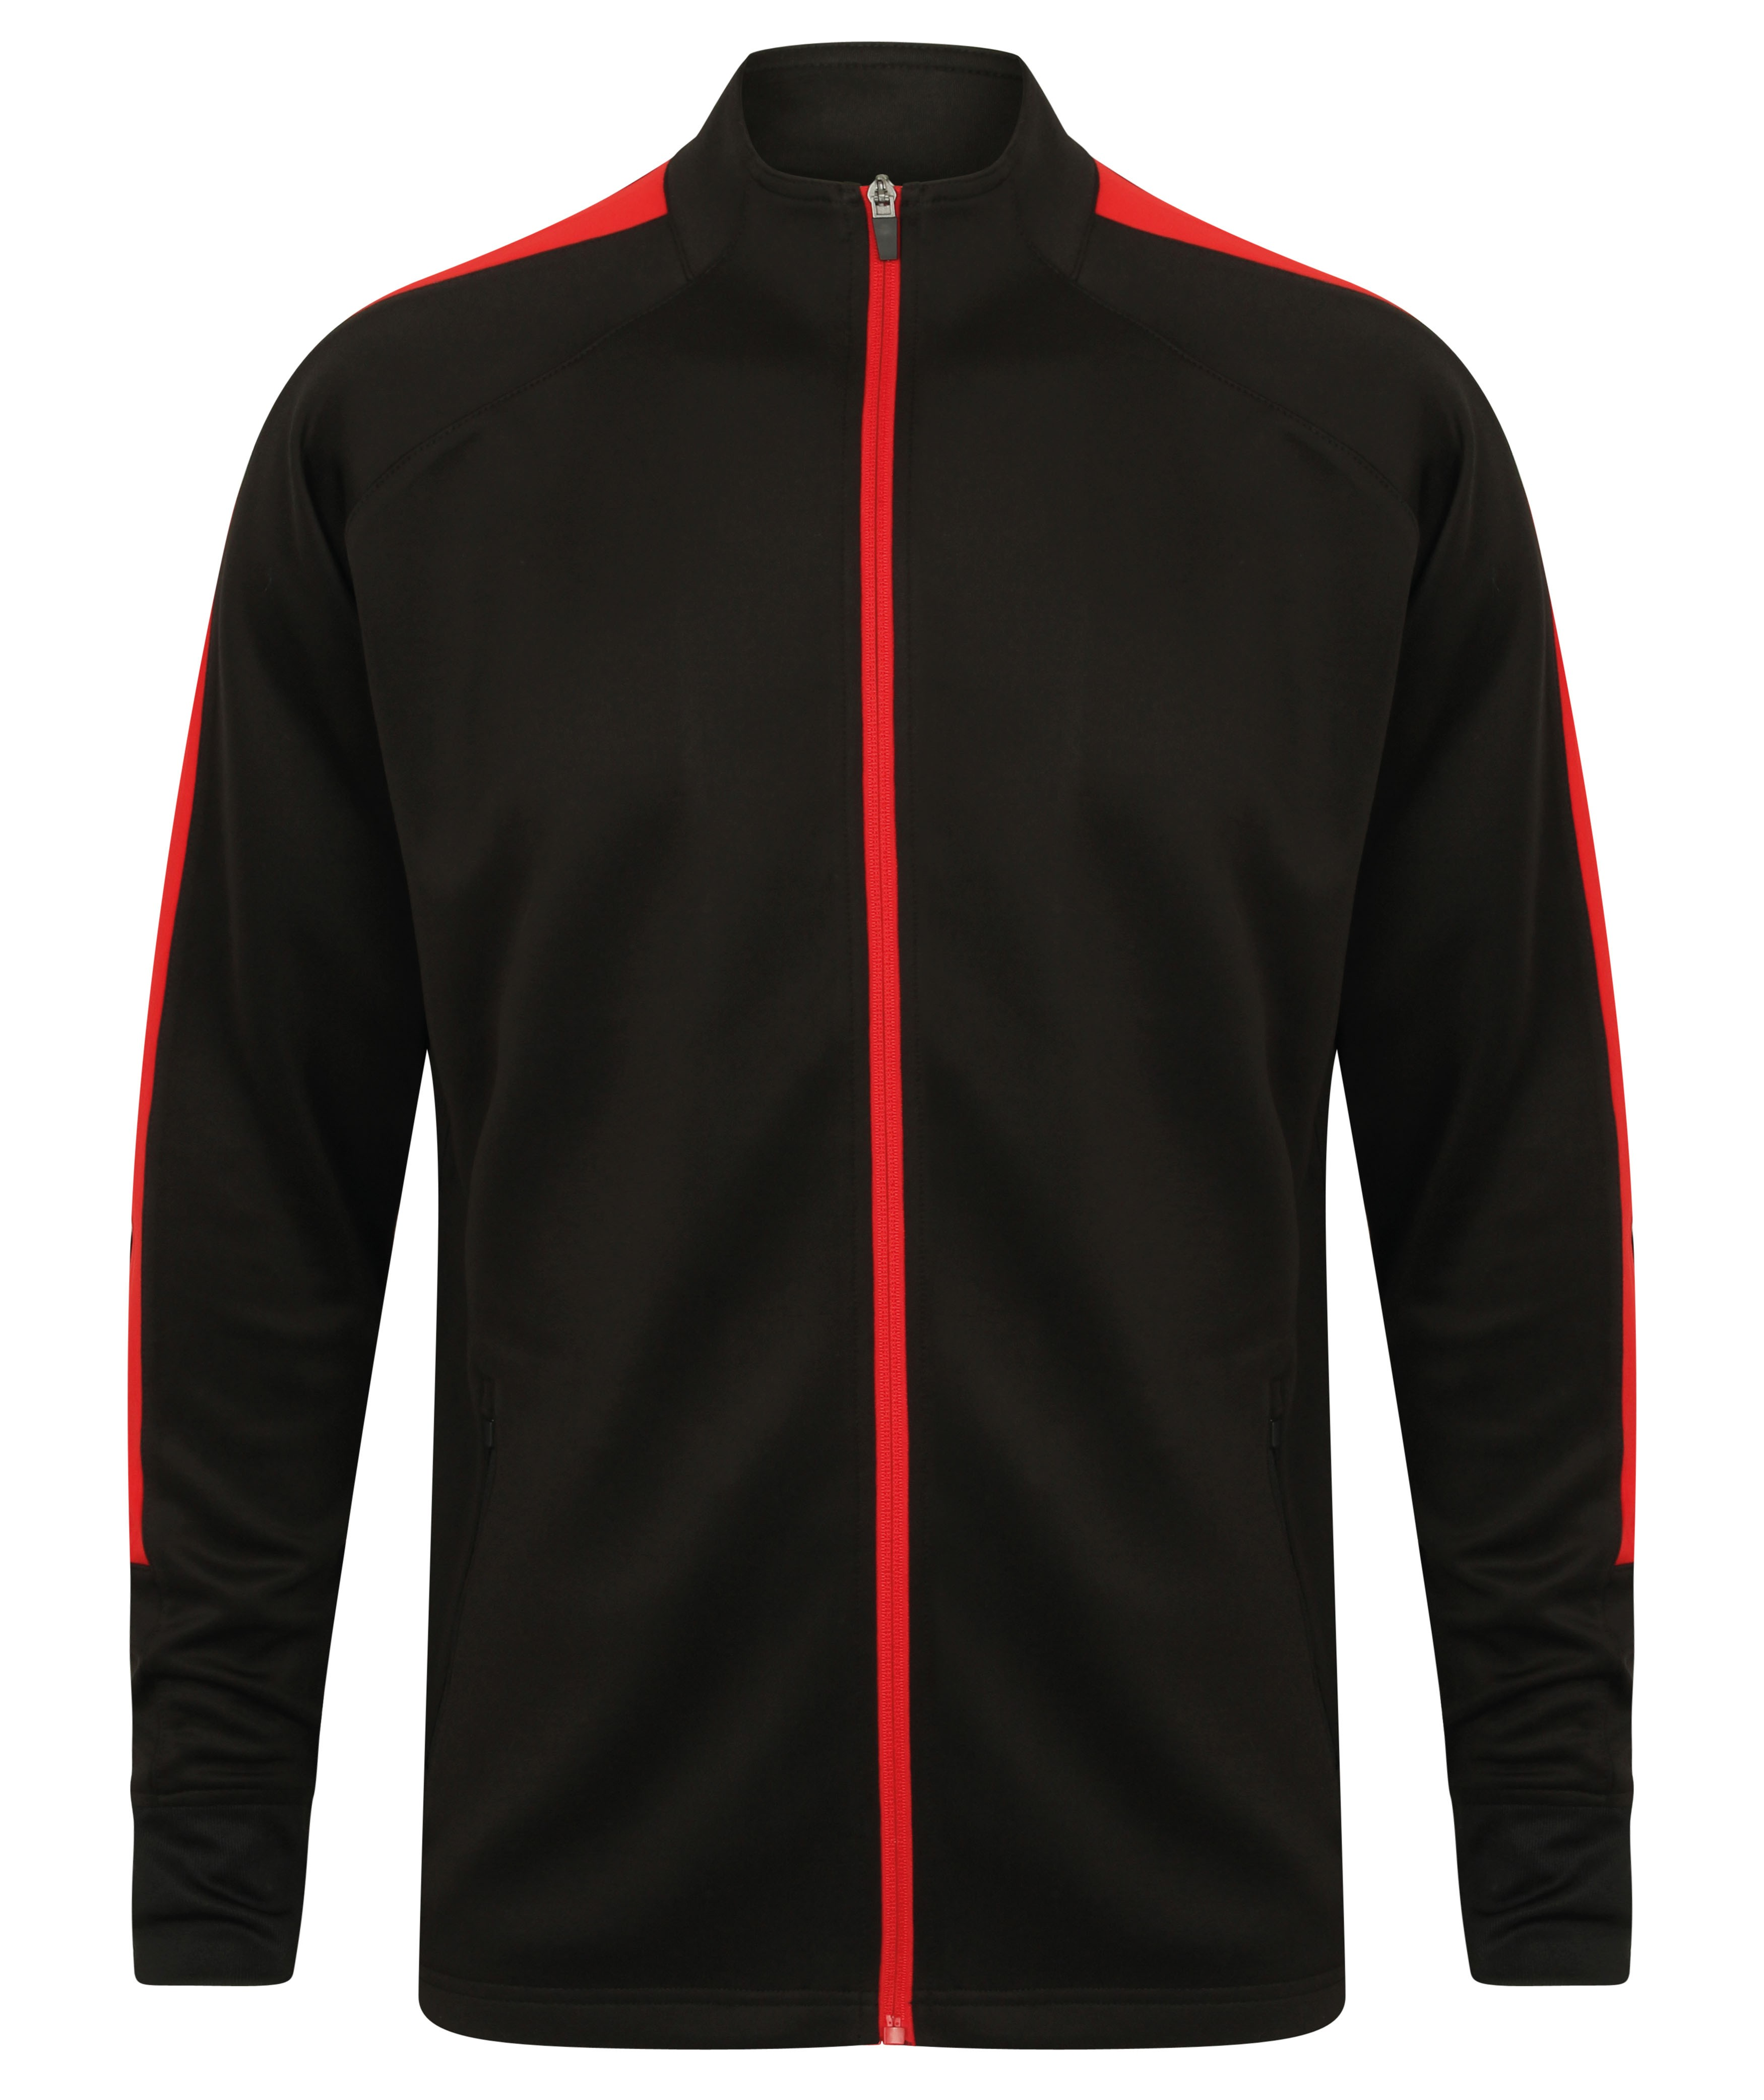 Knitted Teamwear Tracksuit Top Black / Red